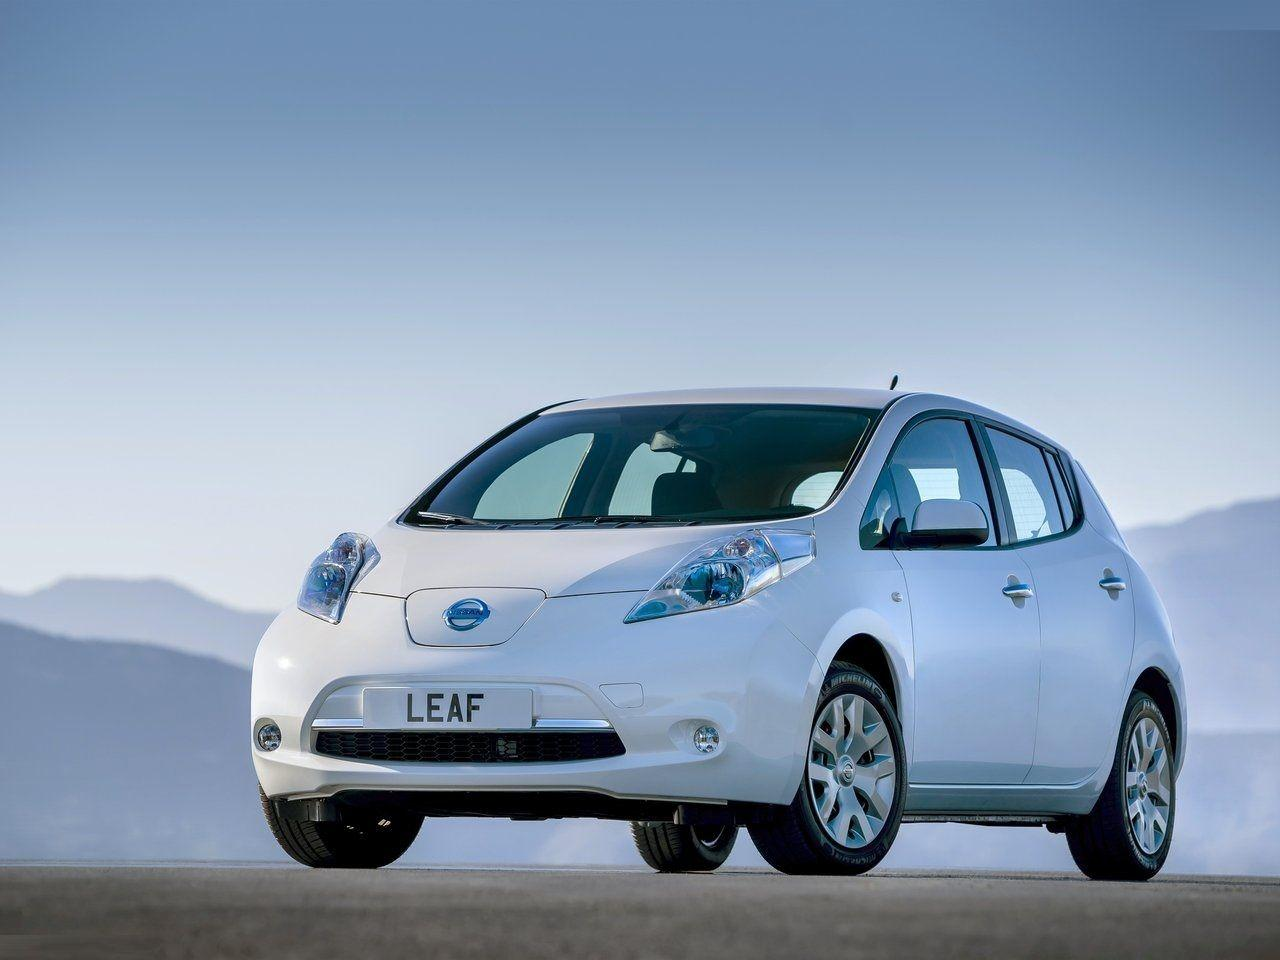 2014 Nissan Leaf - Wallpapers, Pics, Pictures, Images, Photos ...